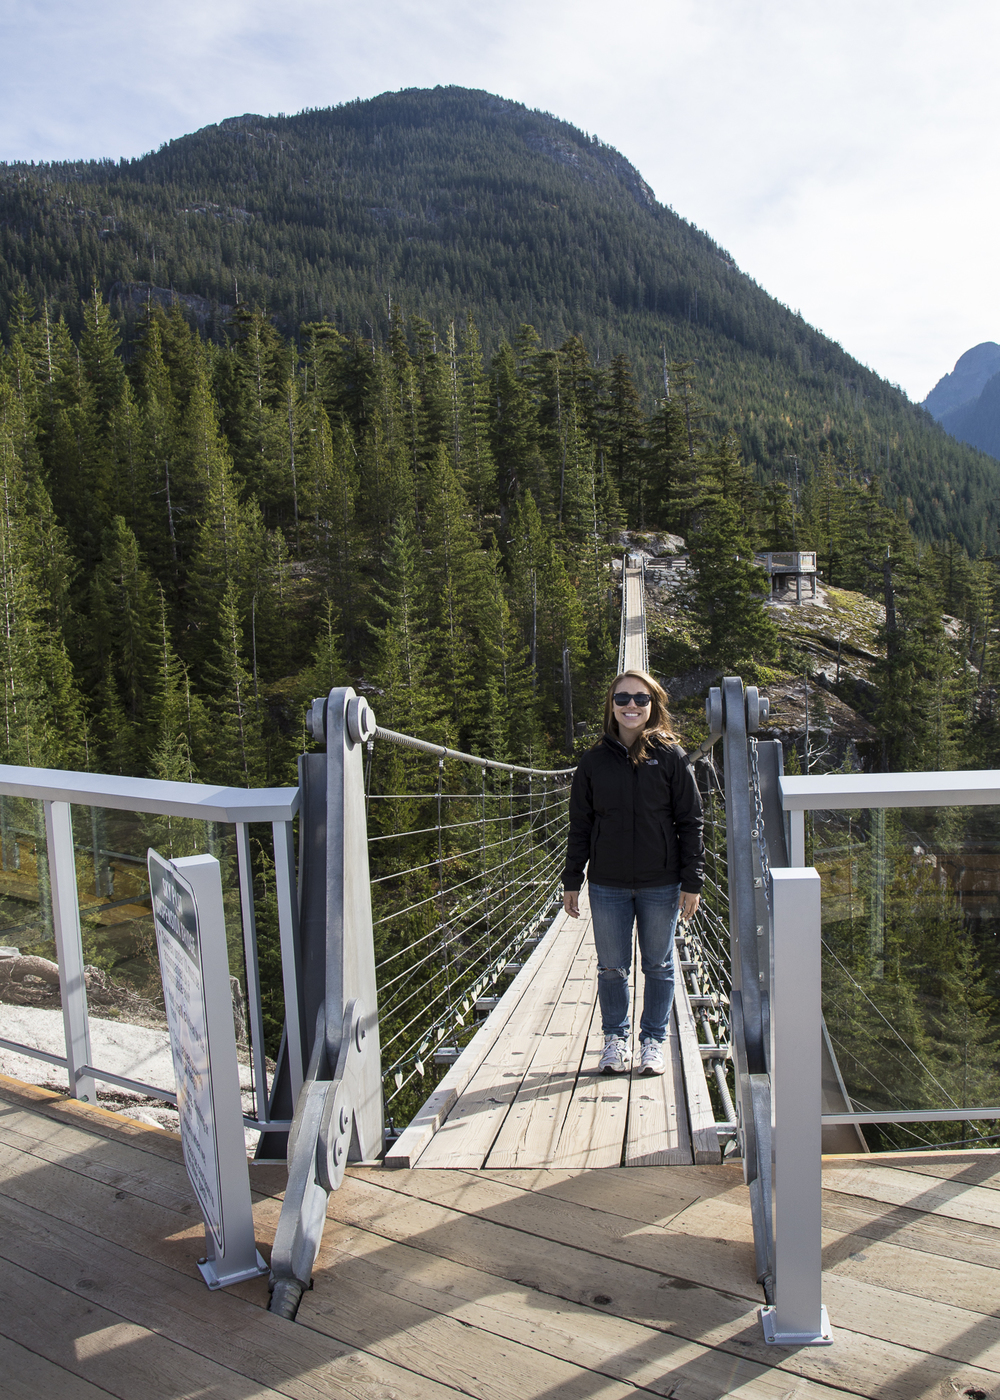 Stephanie on the suspension bridge.